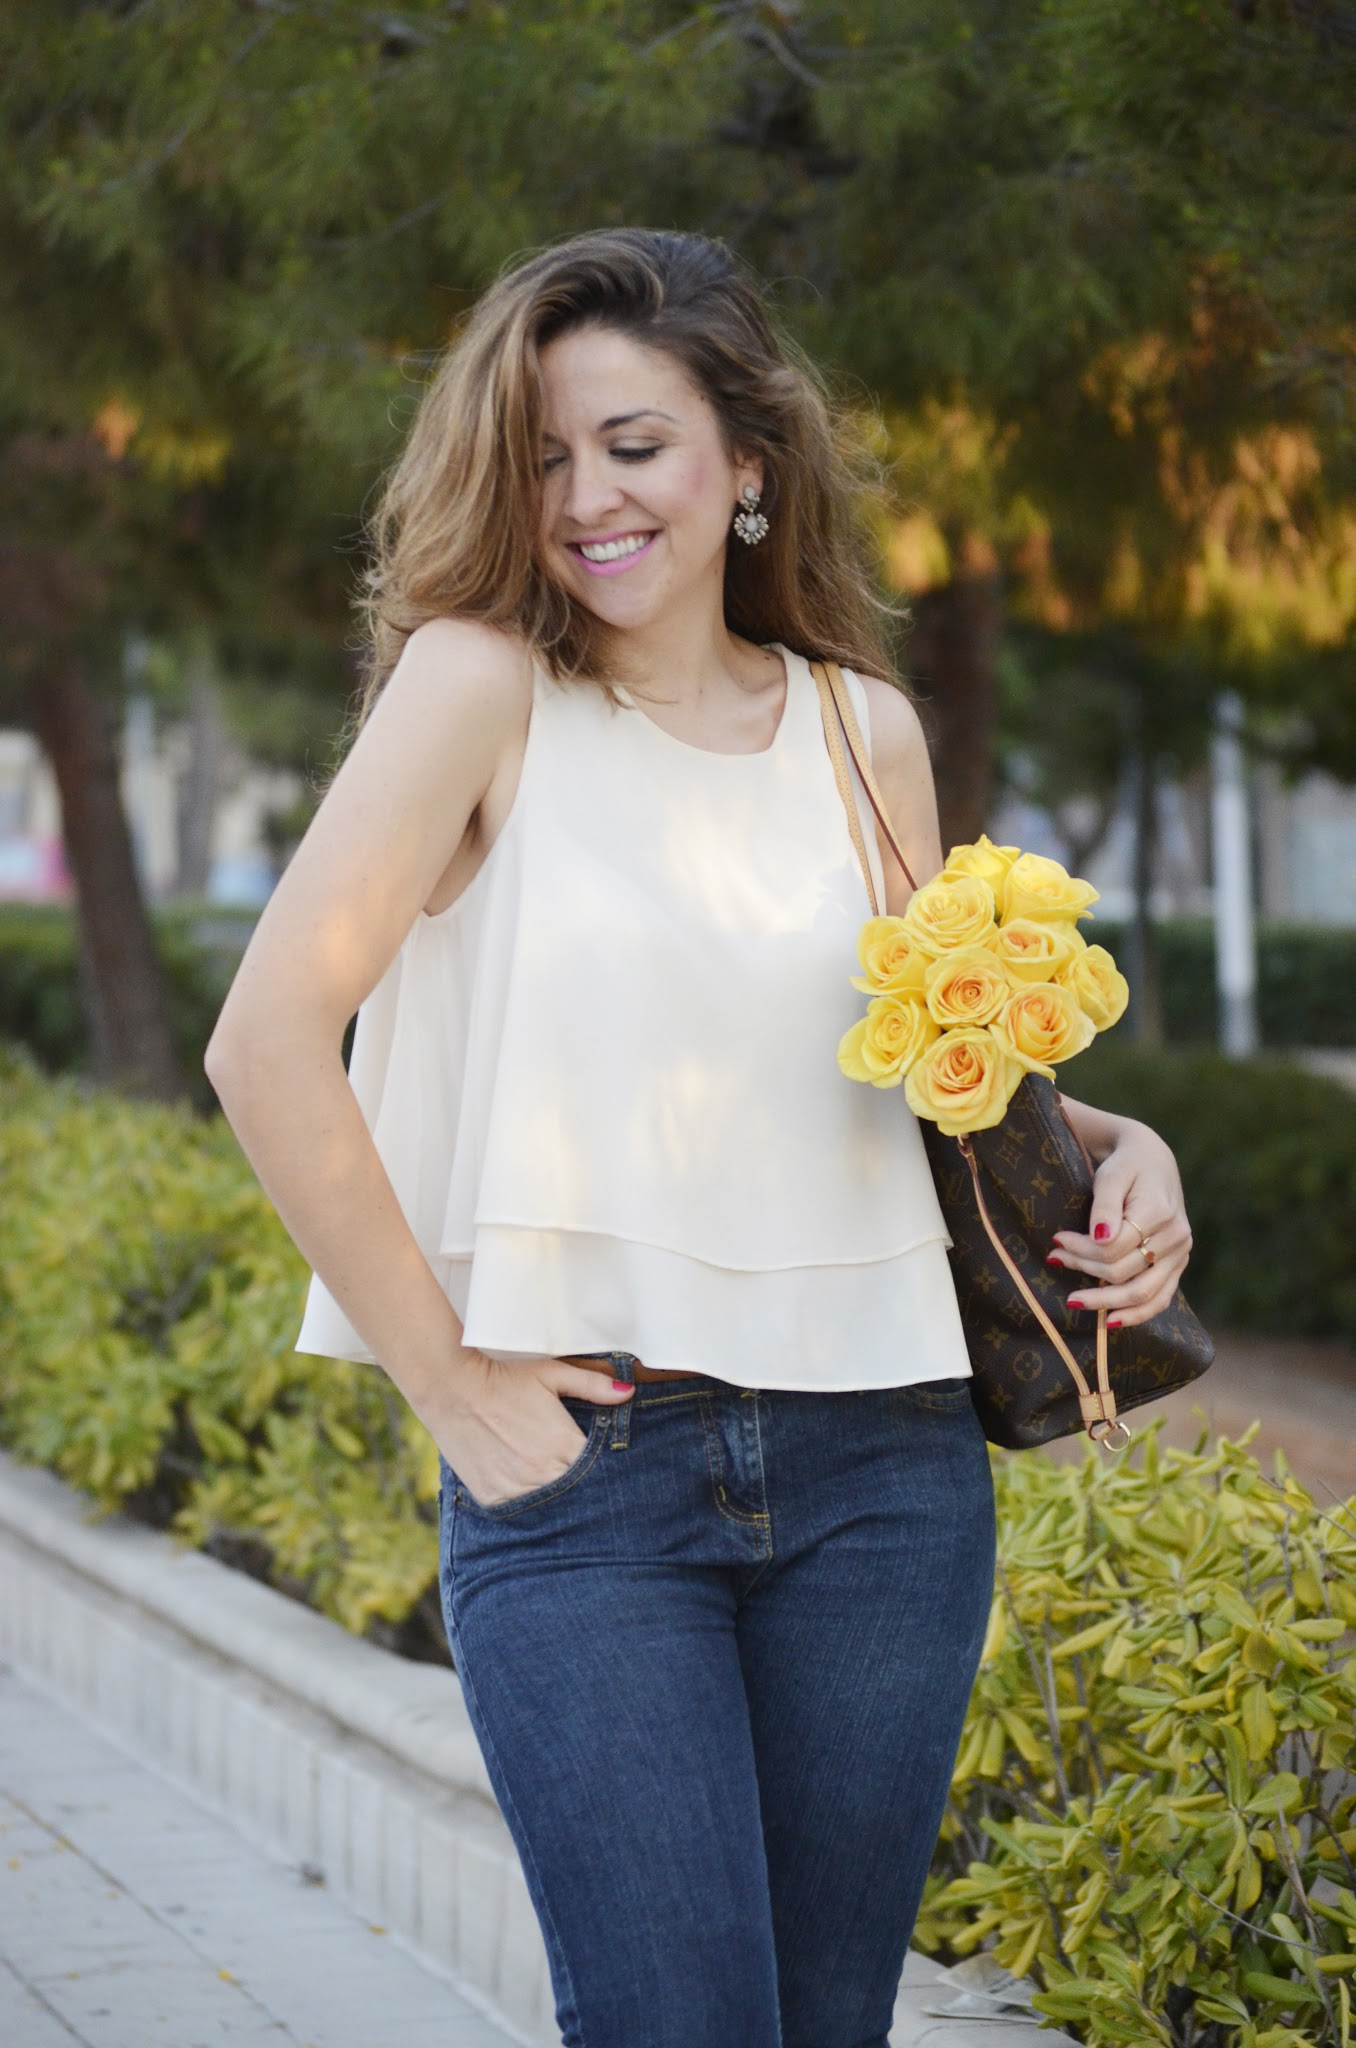 jeans_fresh_flowers_new_sandals